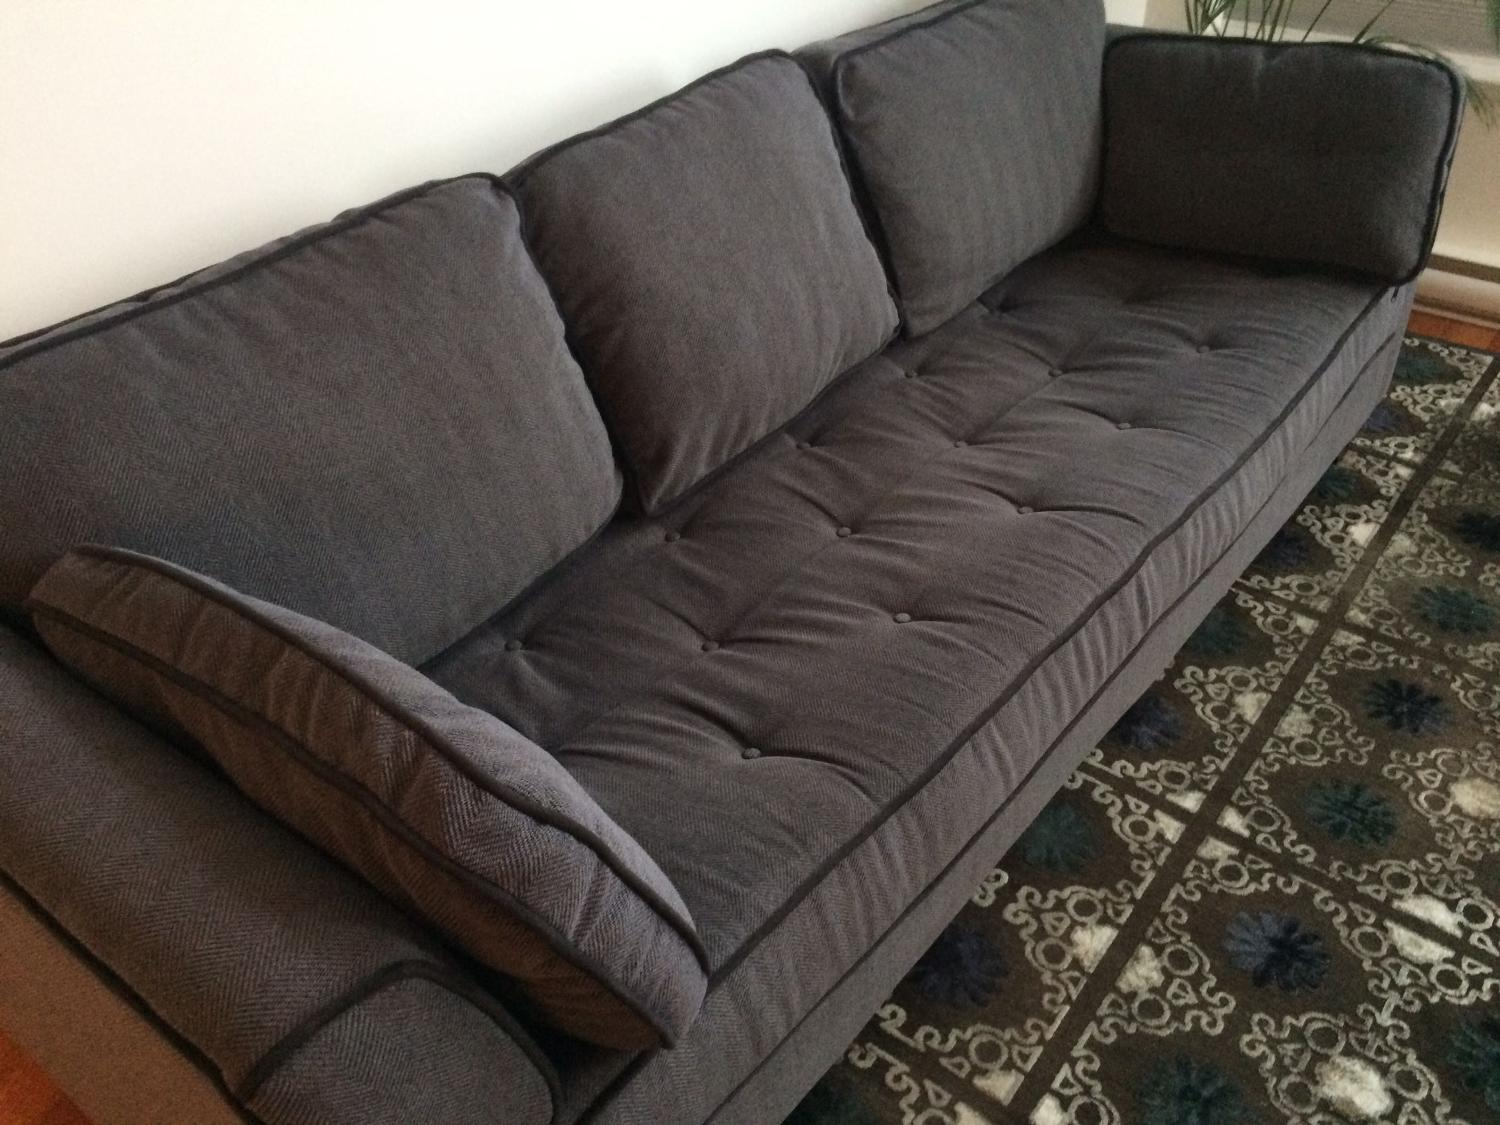 Best sofa couch from urban barn for sale in victoria for Couch sofa for sale bc